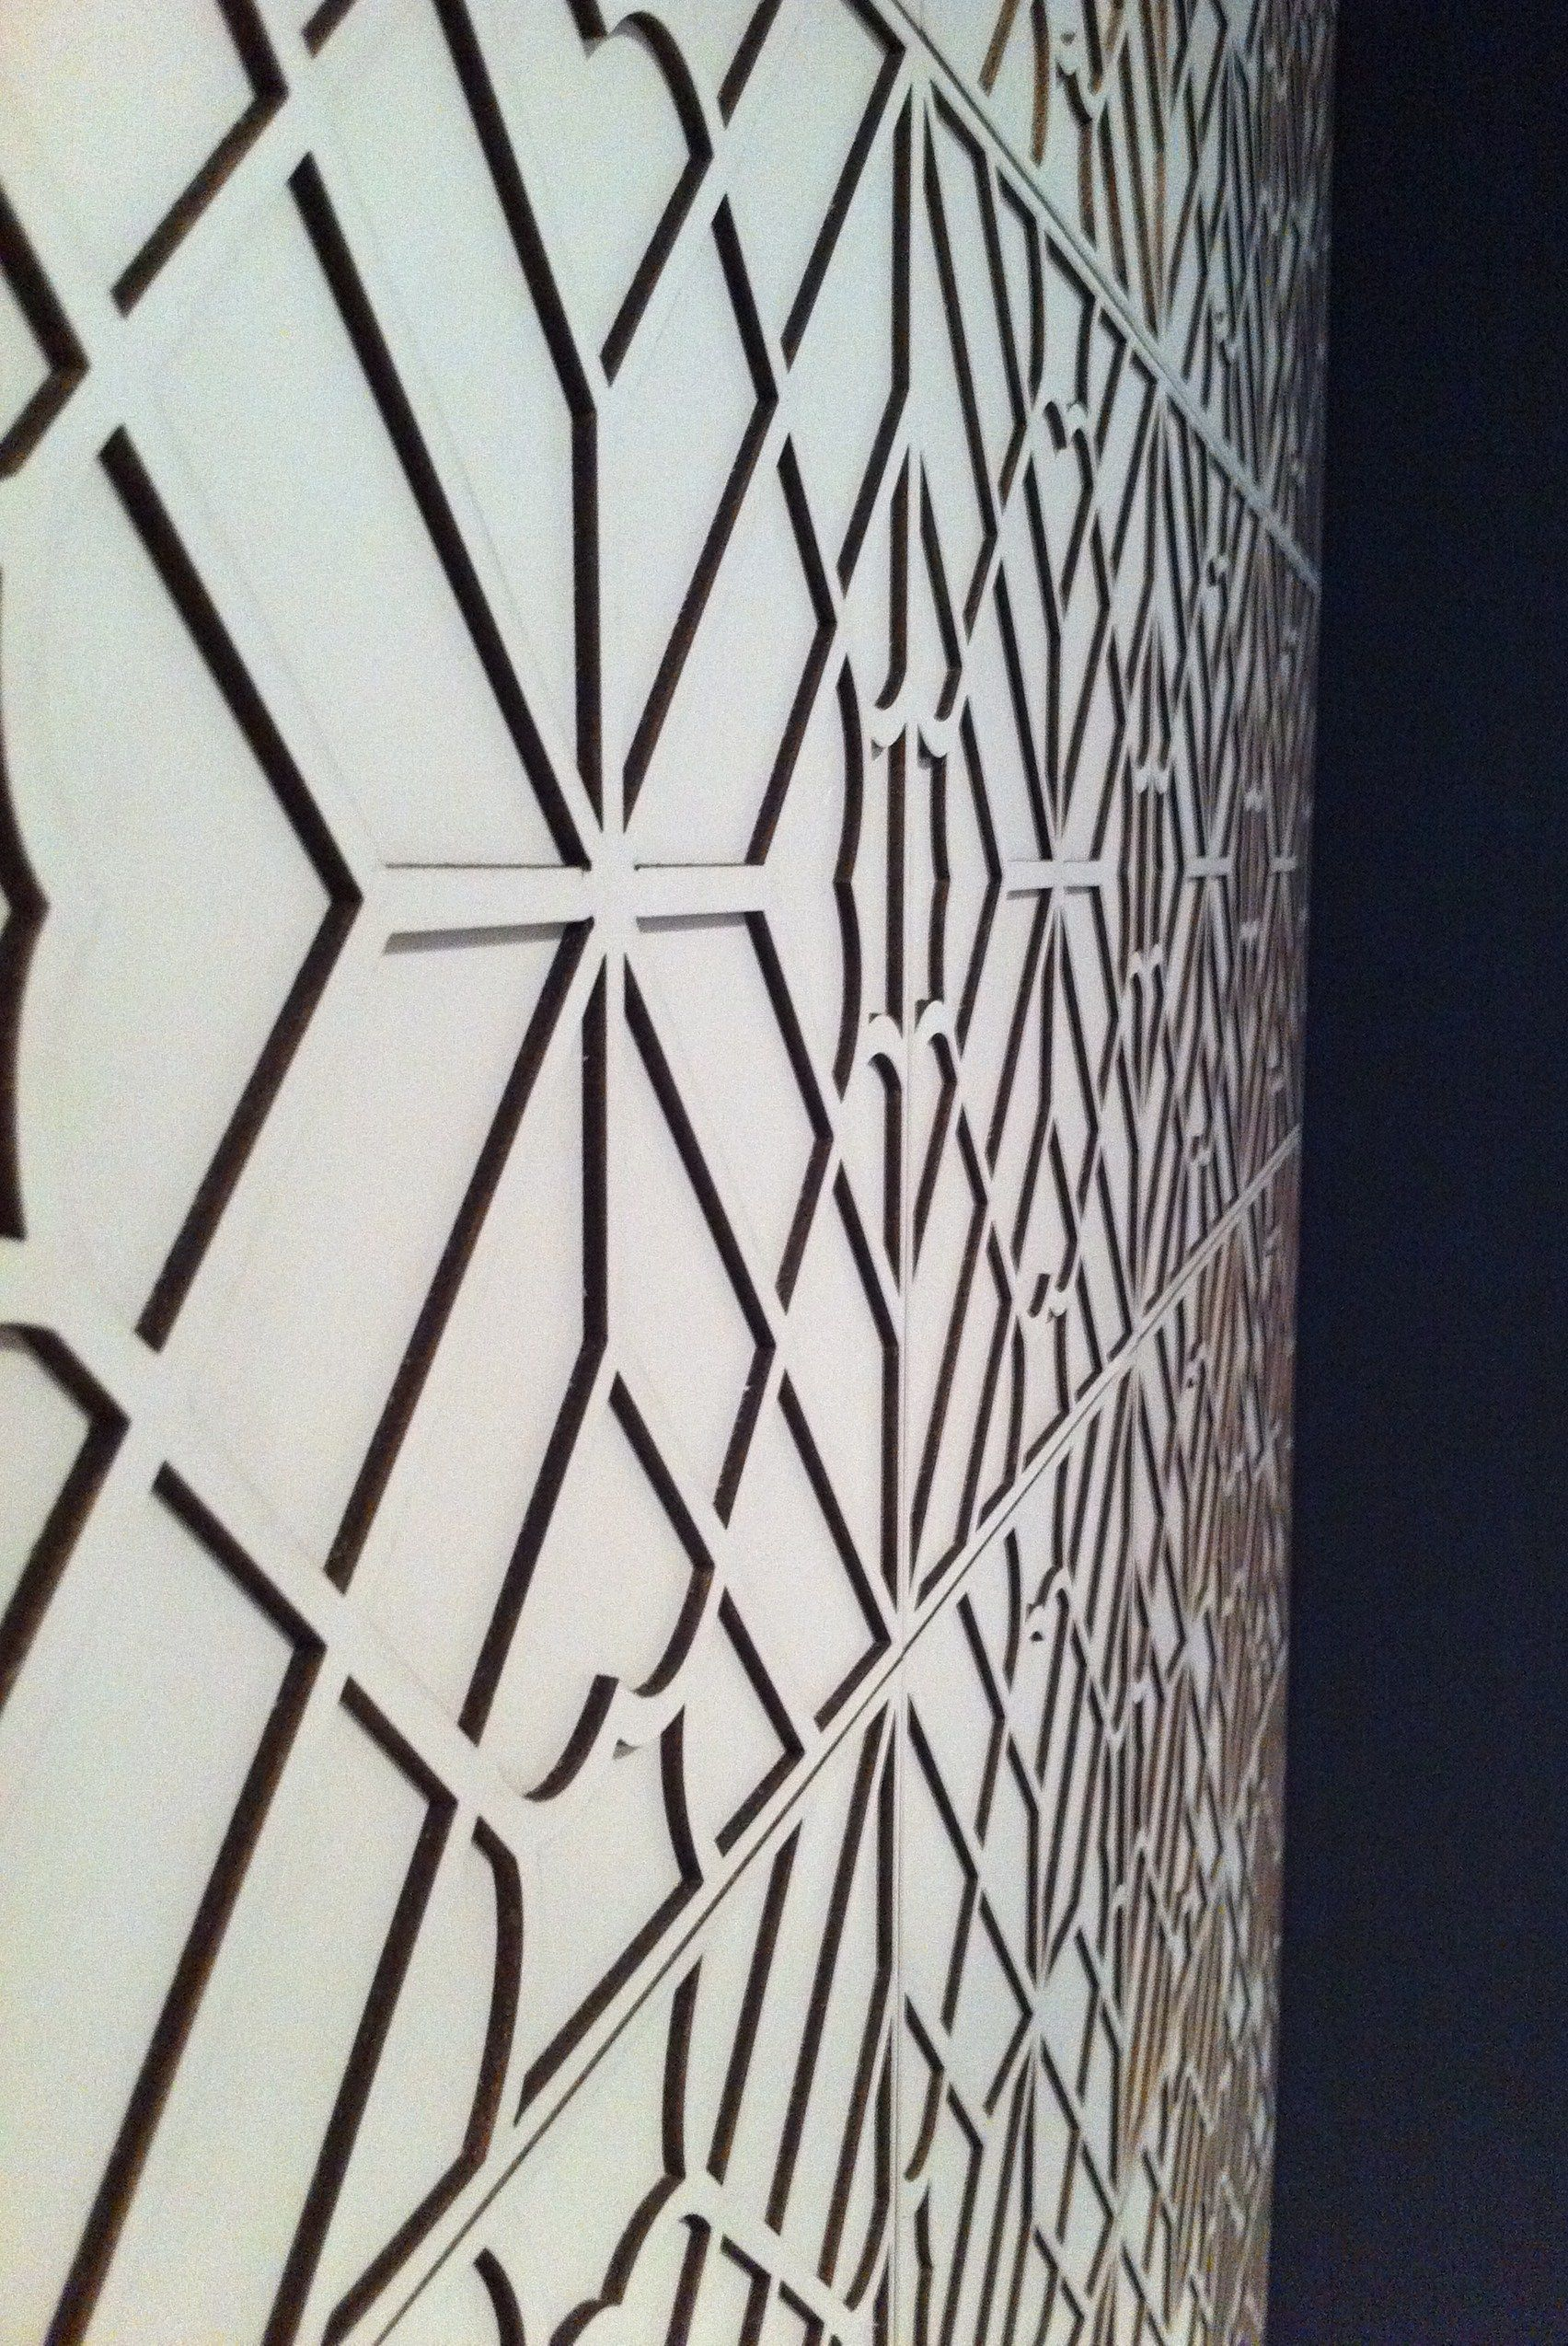 Amazing leather paneled wall im loving the geometry in this pattern by genevieve bennett